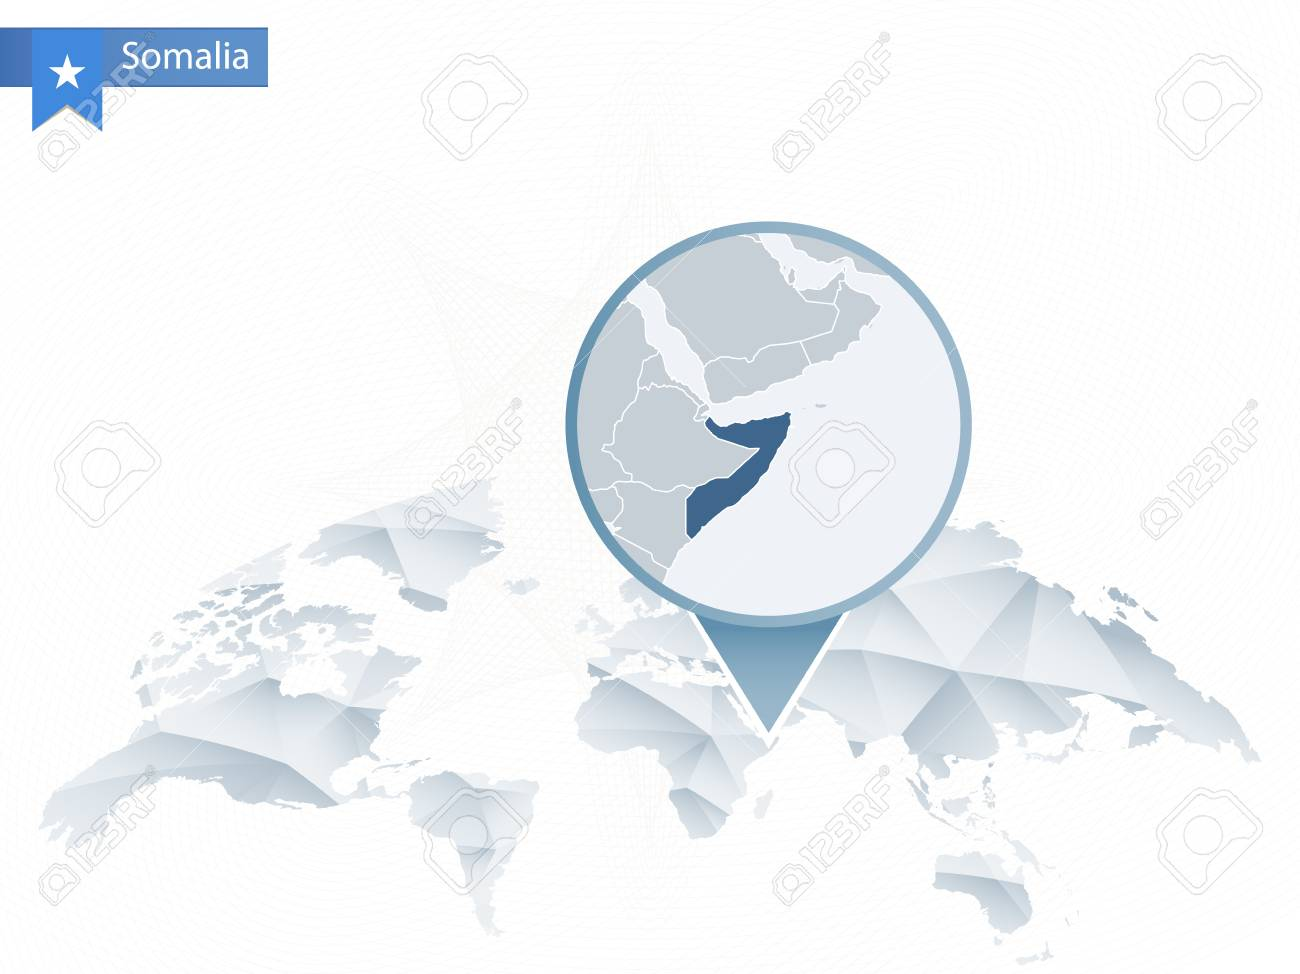 World Map Somolia.Abstract Rounded World Map With Pinned Detailed Somalia Map Royalty